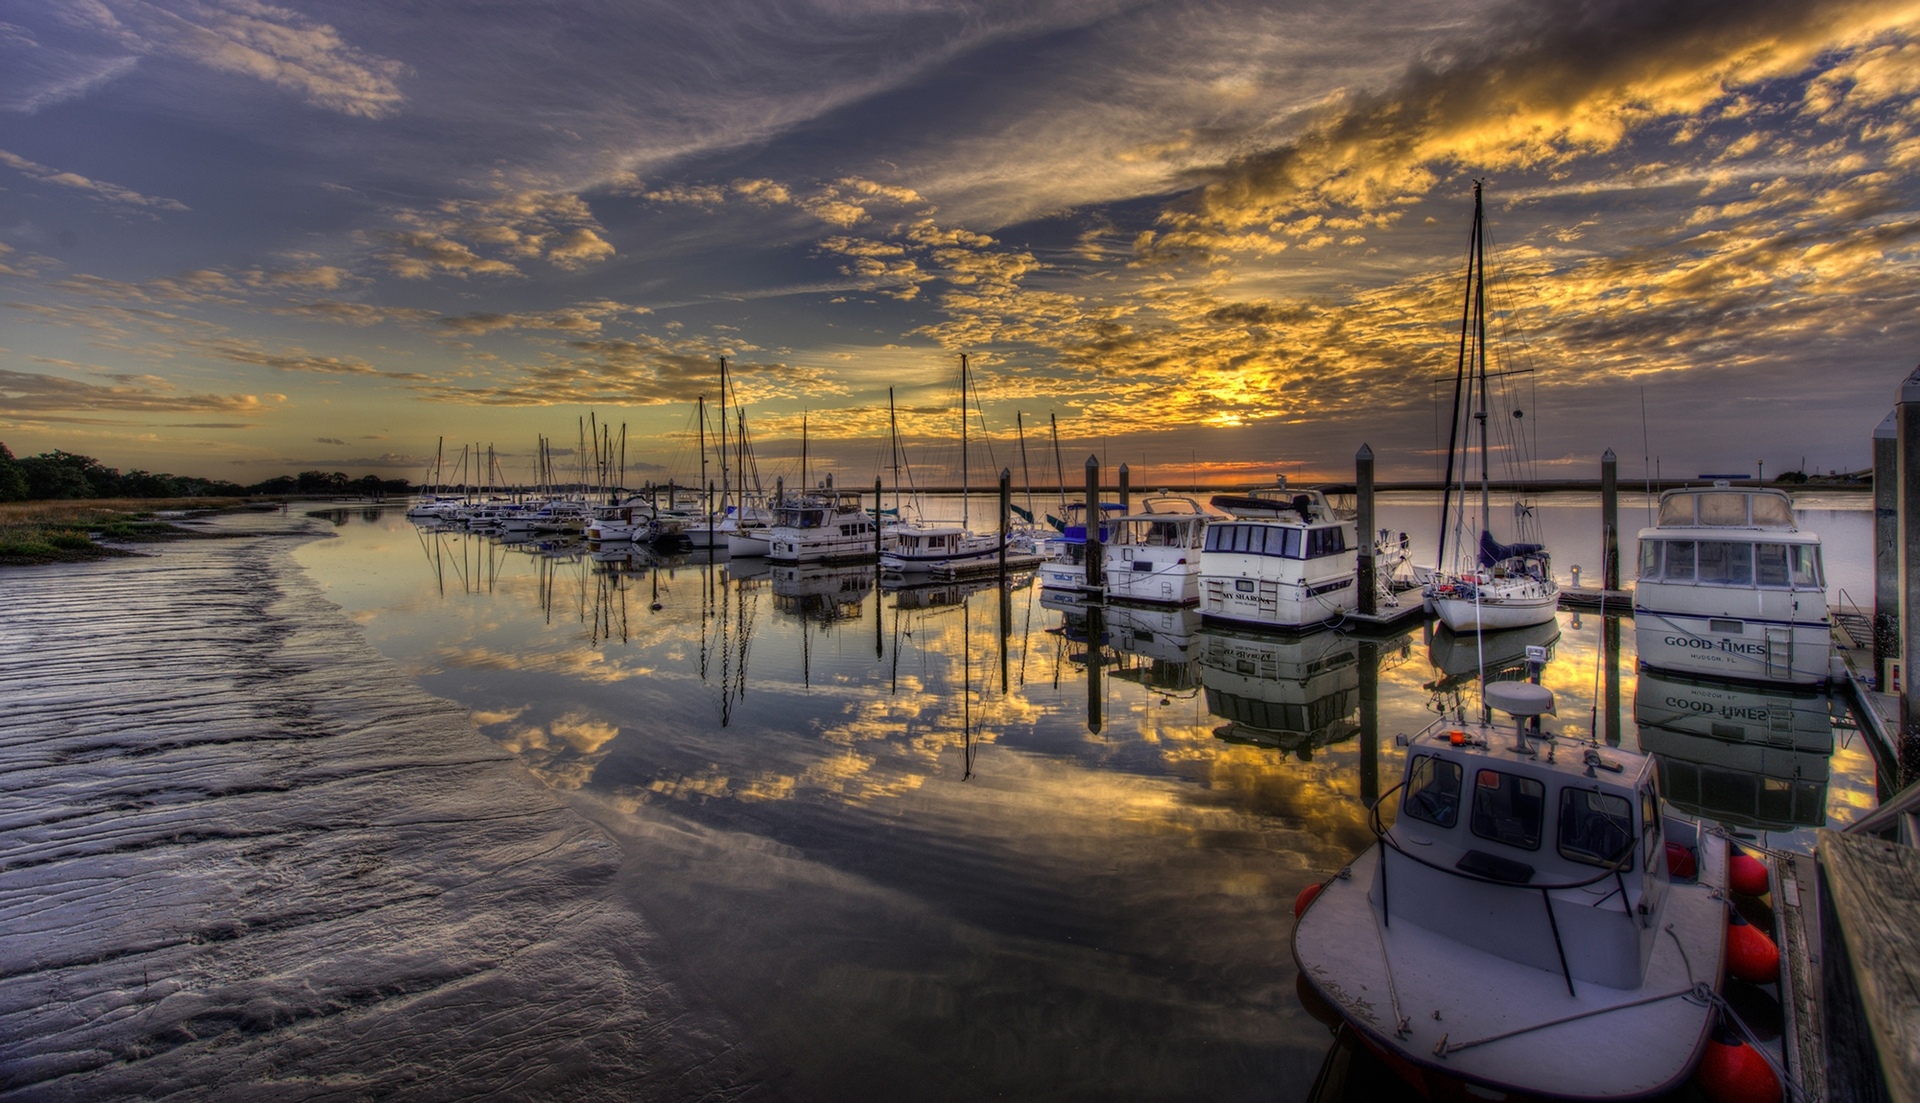 Sunset view of boats at Jekyll Harbor